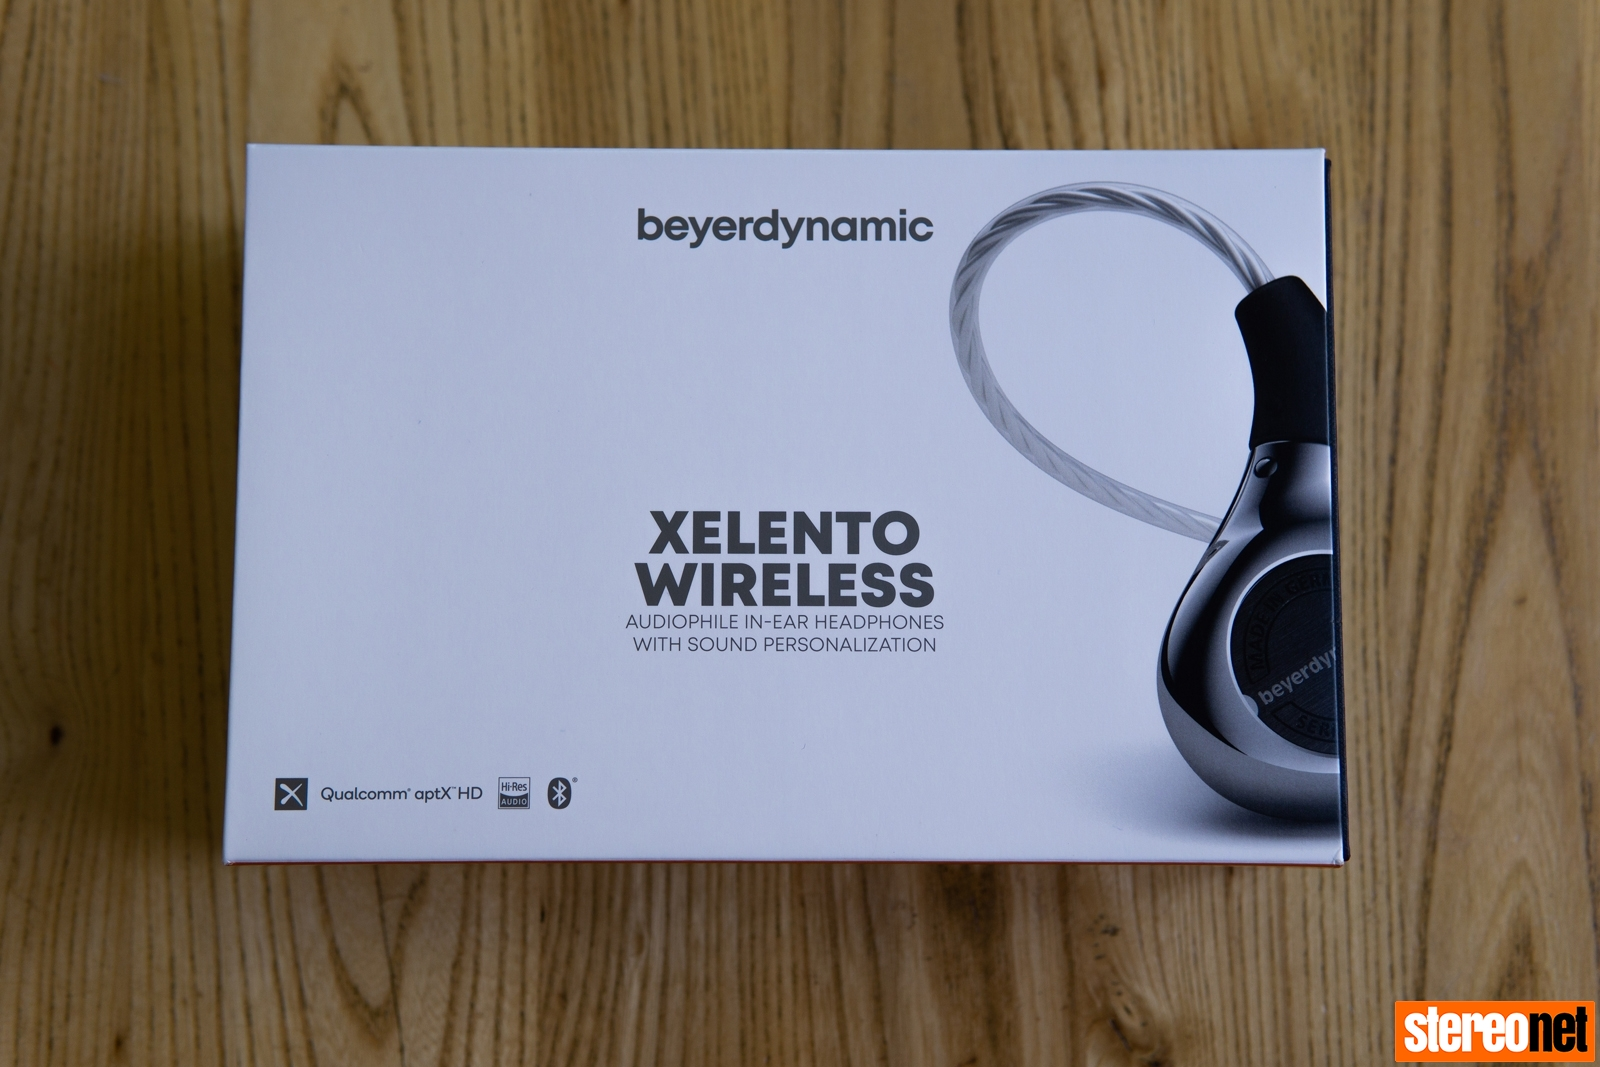 Beyerdynamic Xelento Wireless Headphones